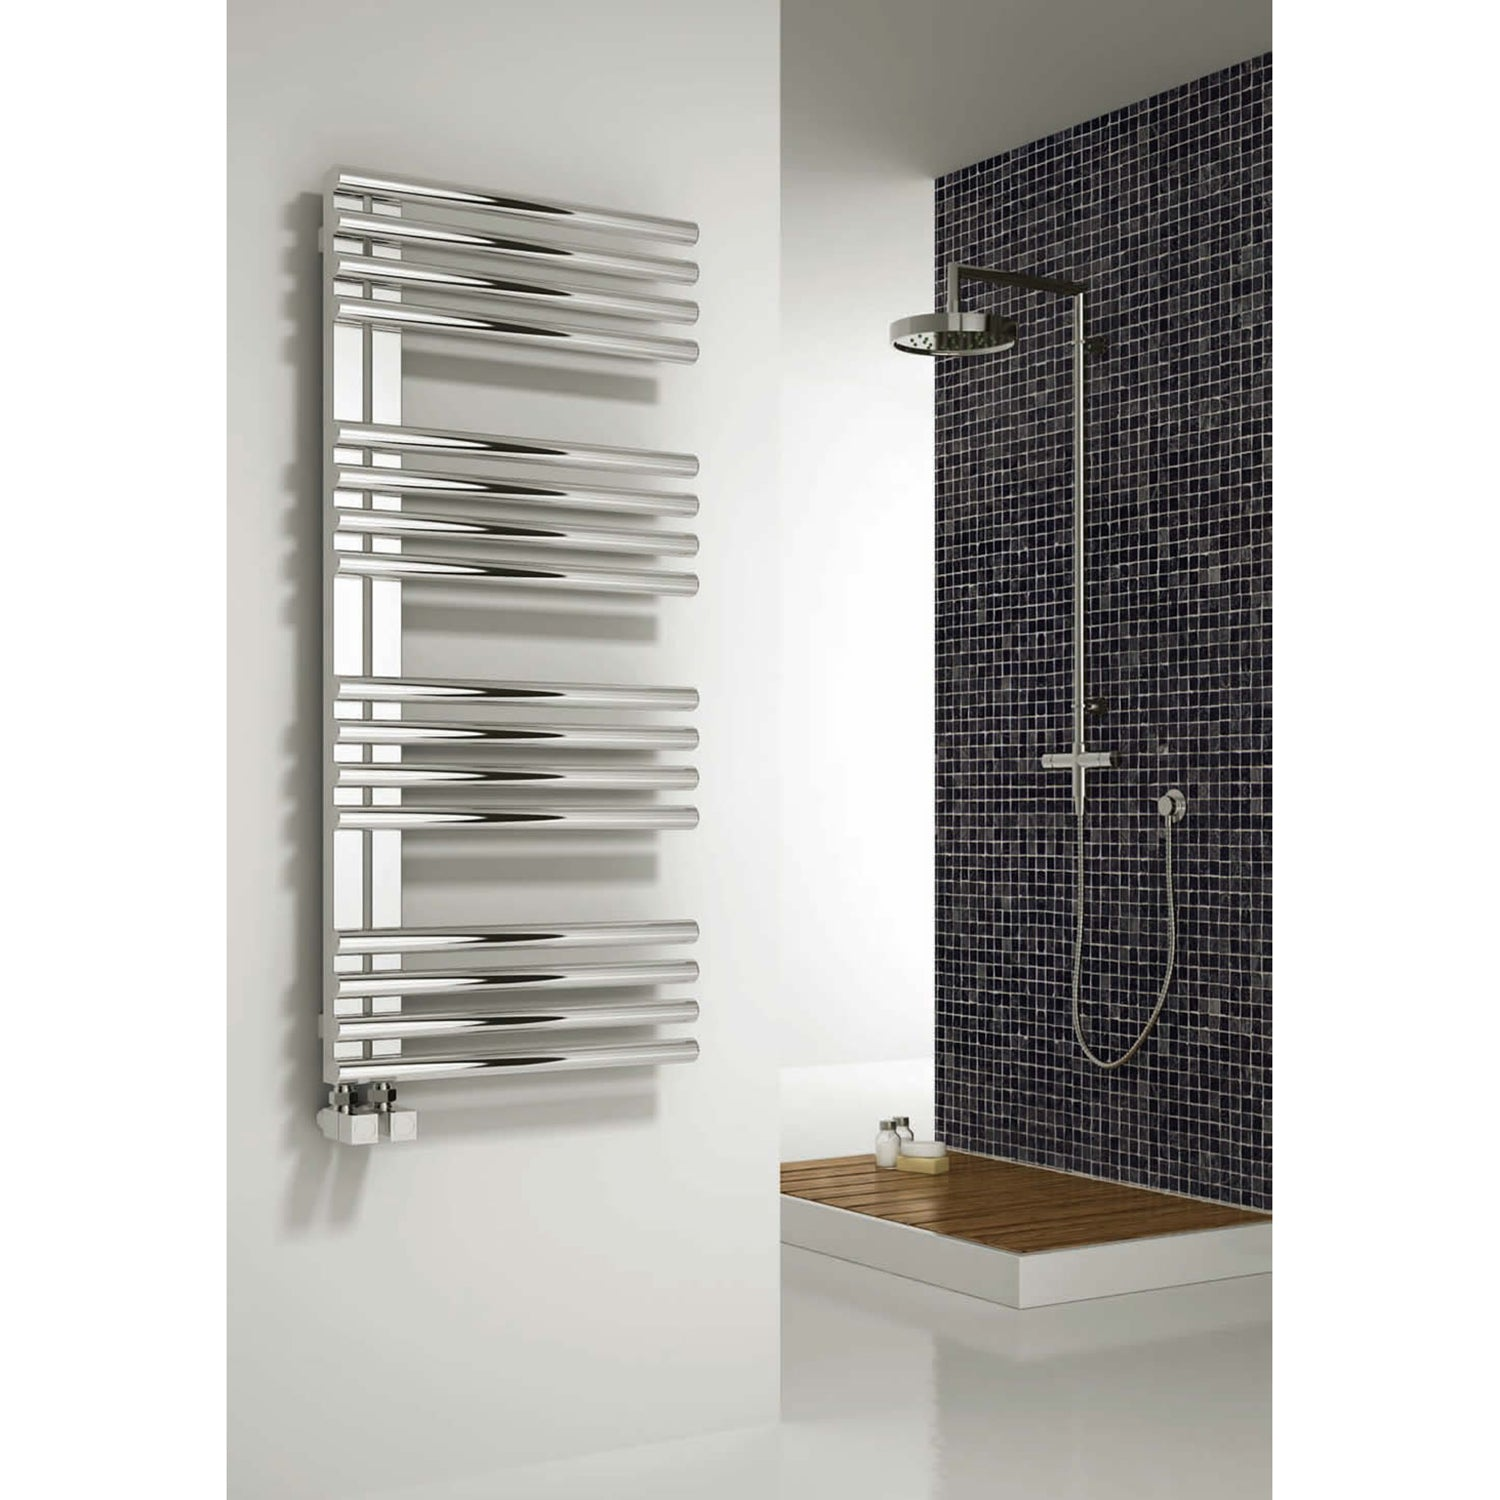 Reina Adora Stainless Steel Towel Radiator